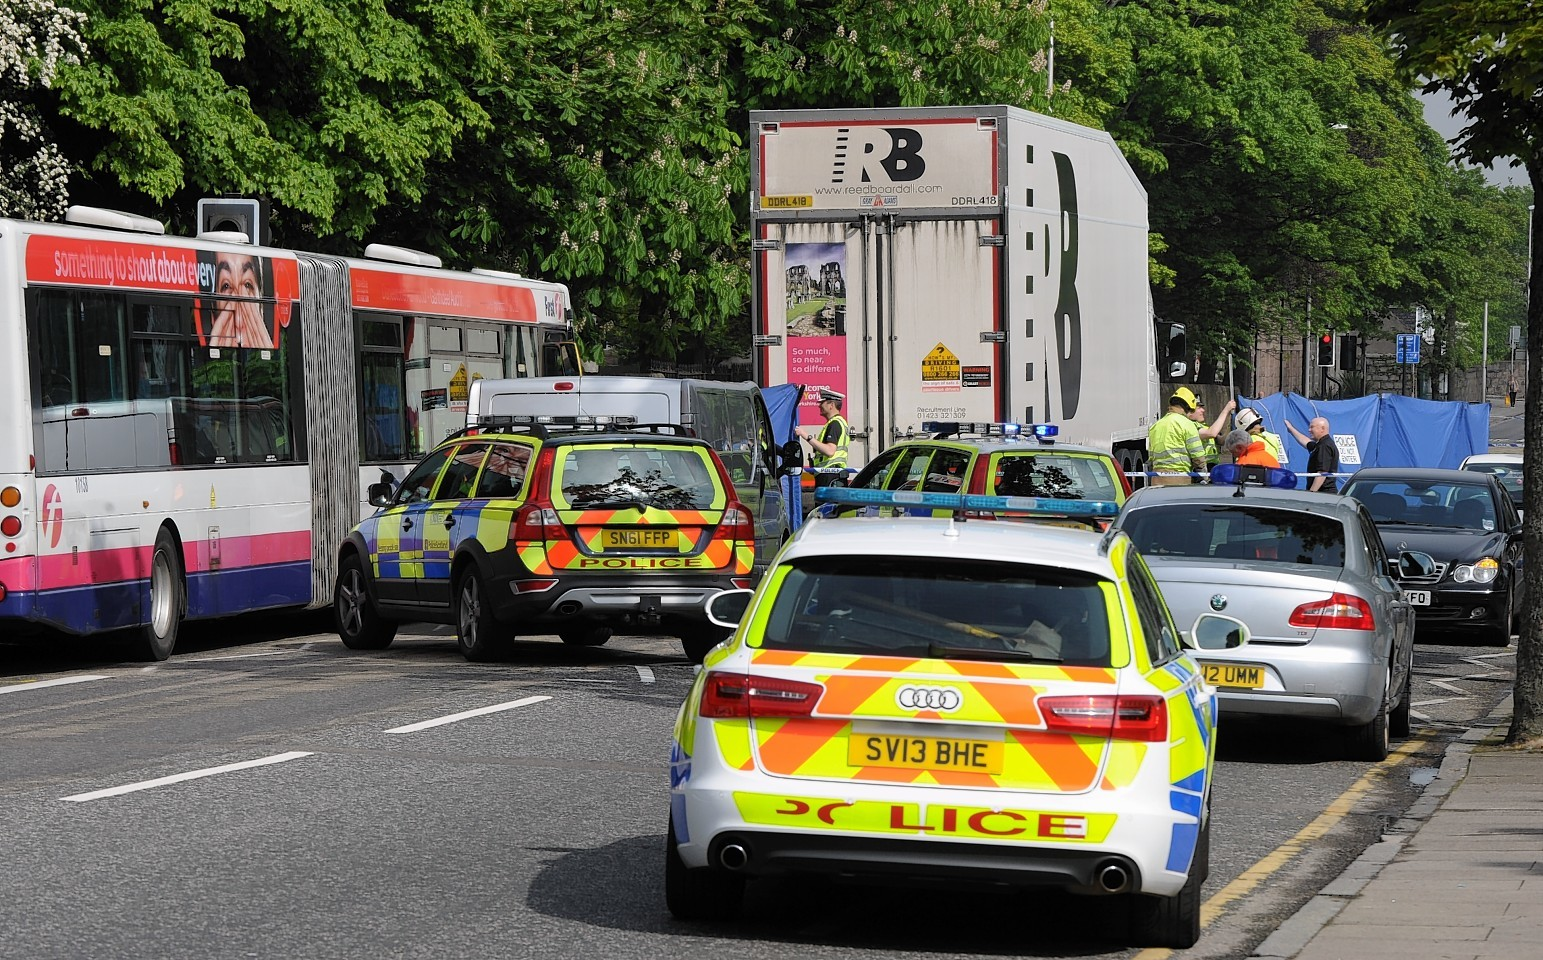 Police at scene of fatal lorry collision that killed Karen Gillanders